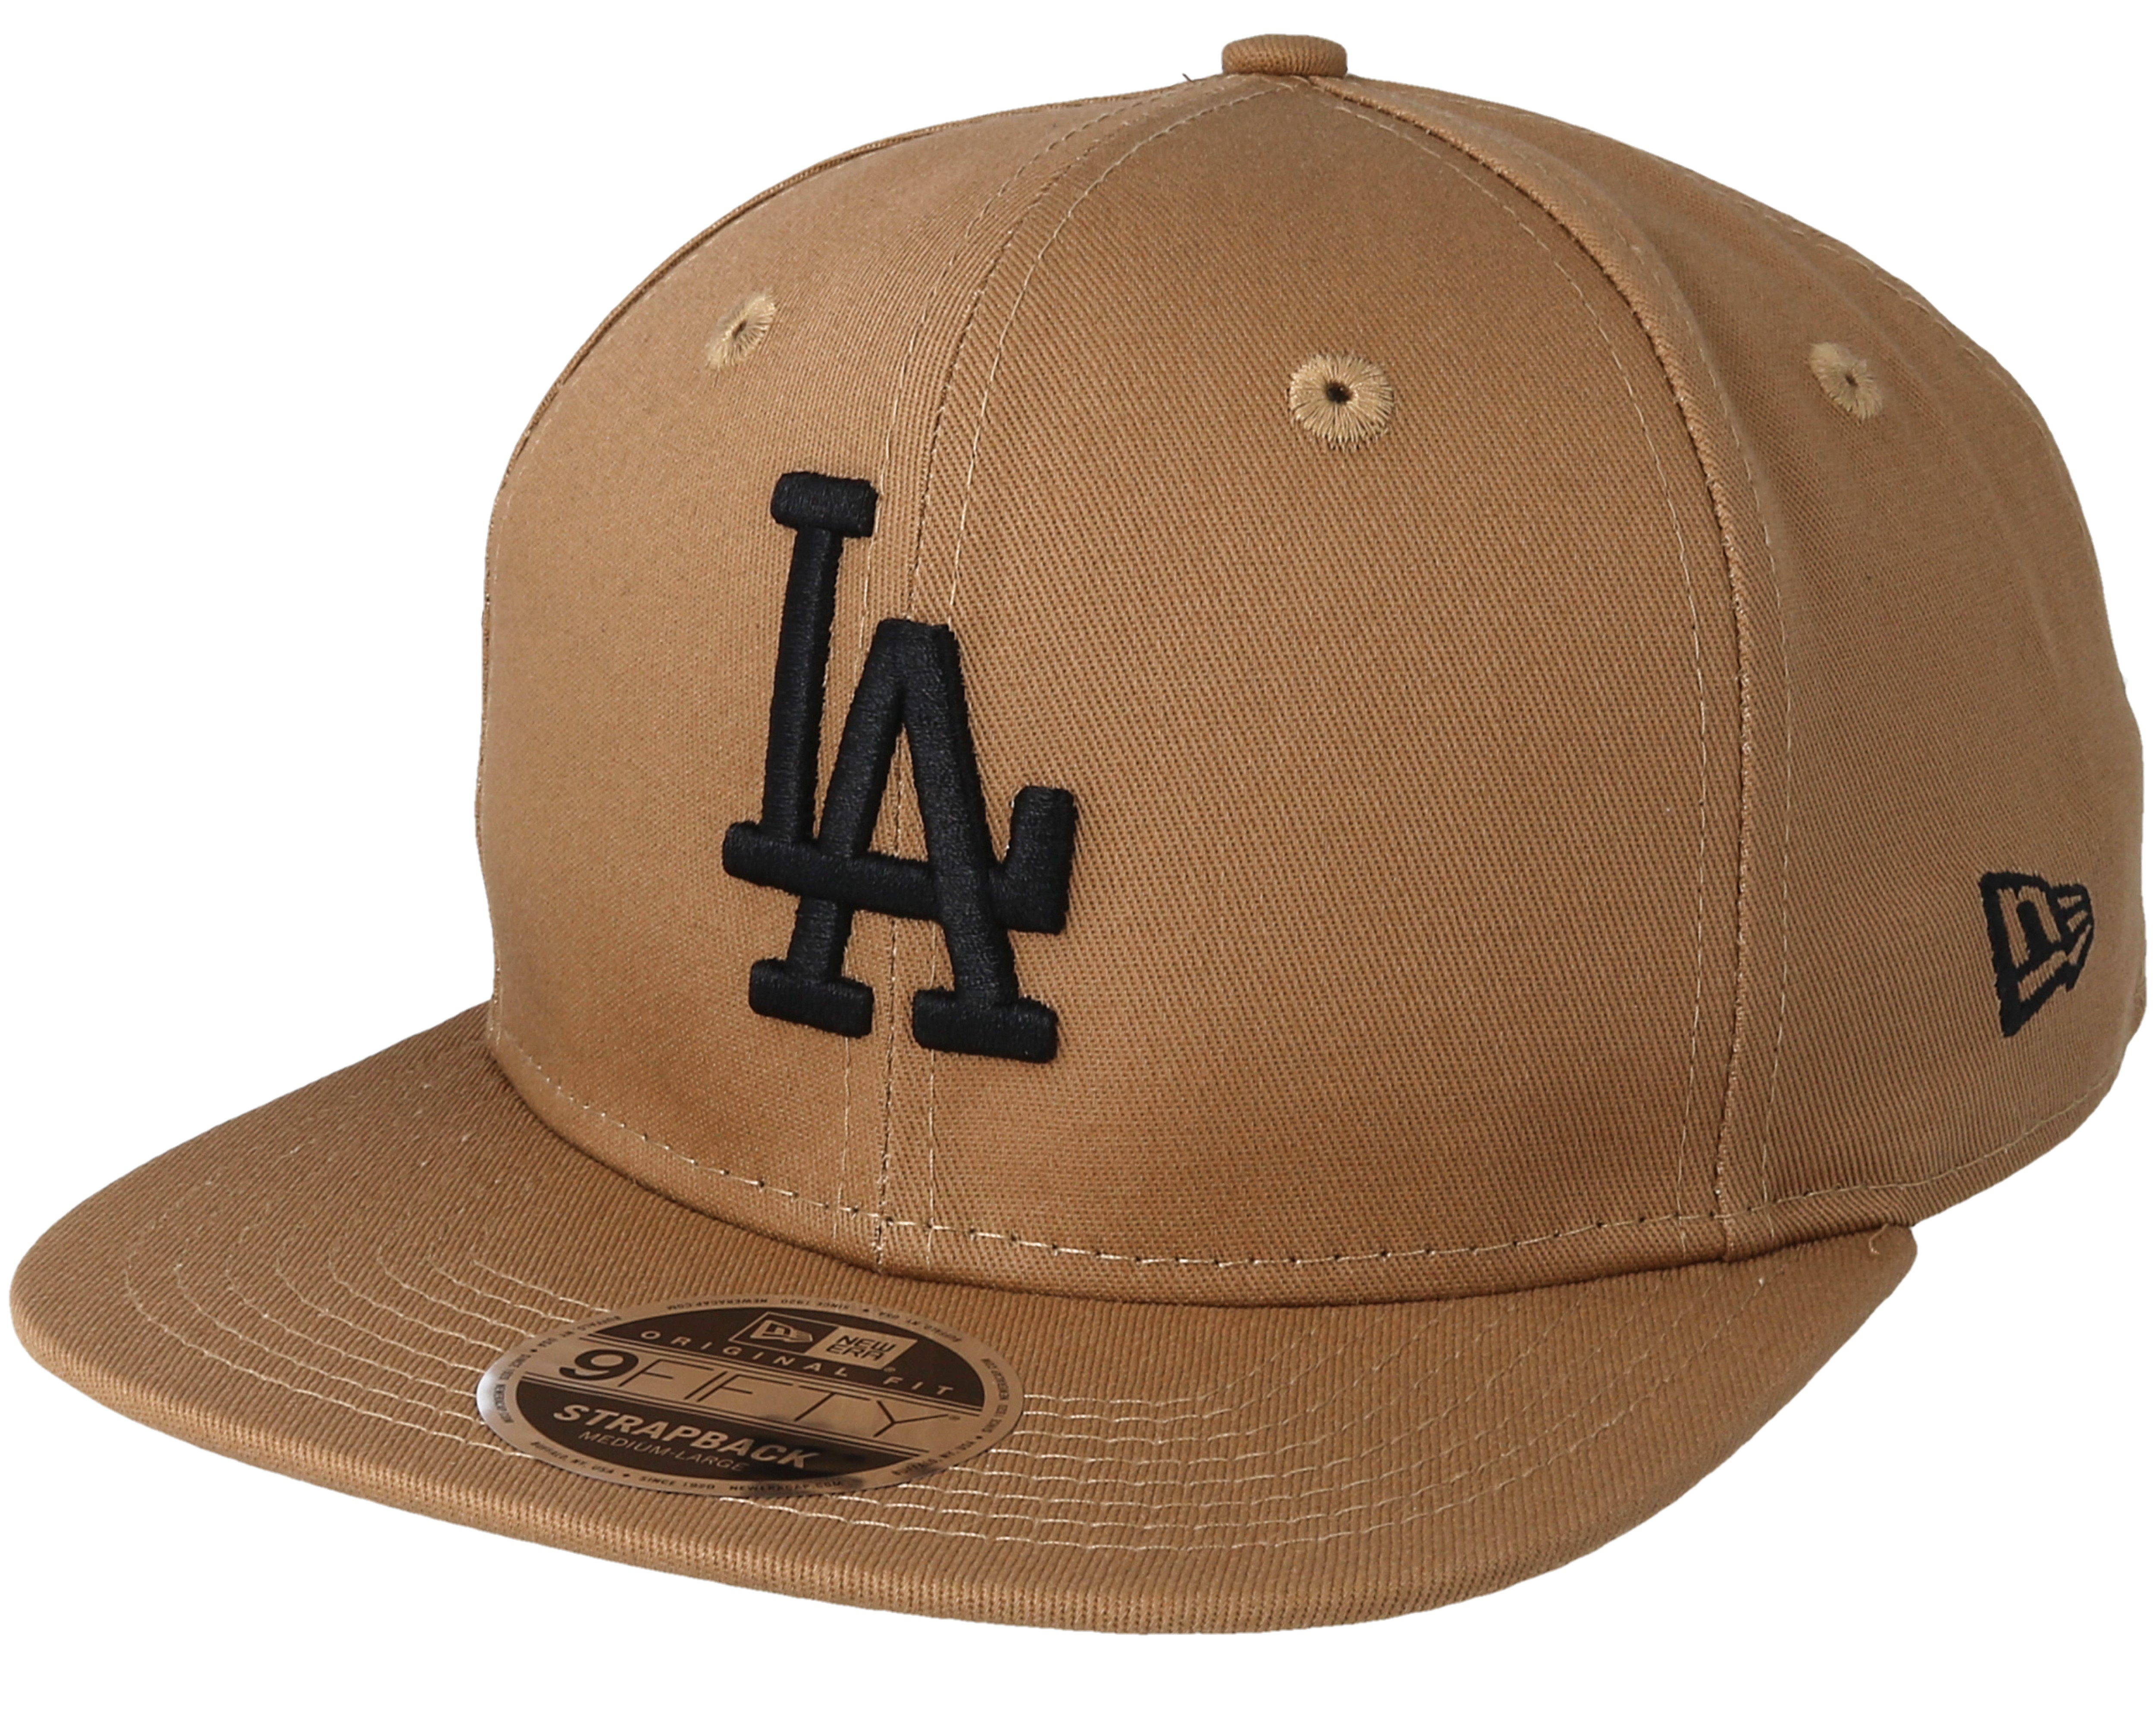 los angeles dodgers essay Mens bodega was born out of personal passion  mens bodega shared fox 11 los angeles's video  with an essay about why he's the biggest los angeles dodgers.